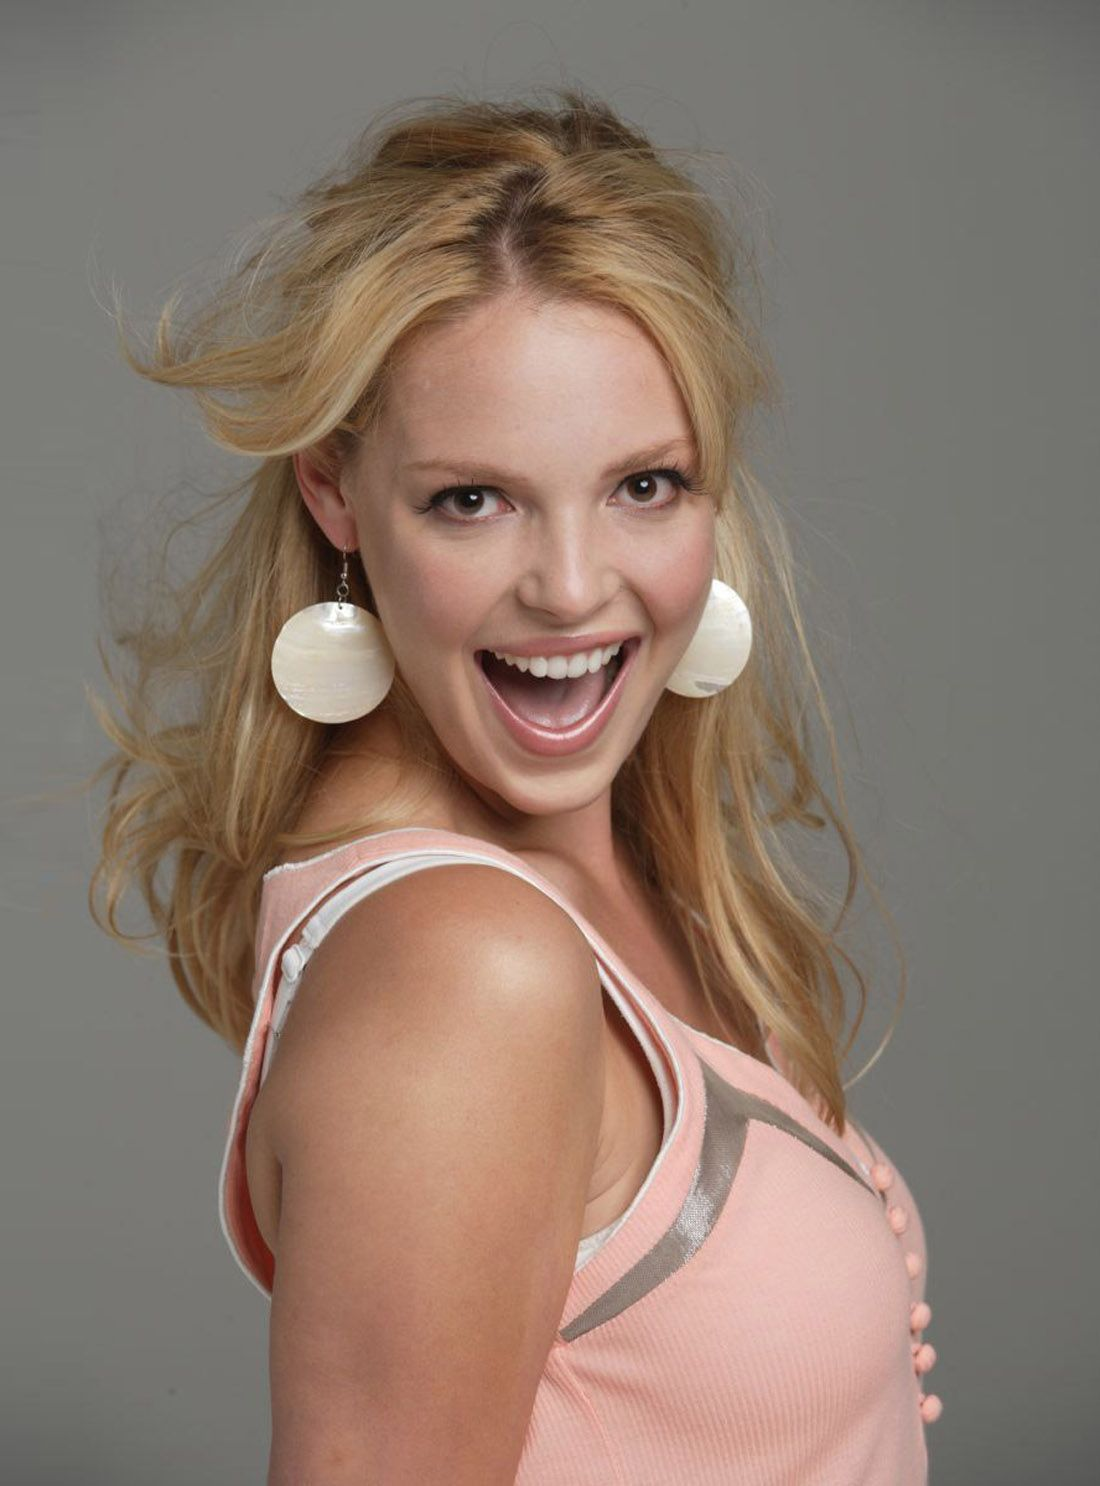 katherine heigl fansite